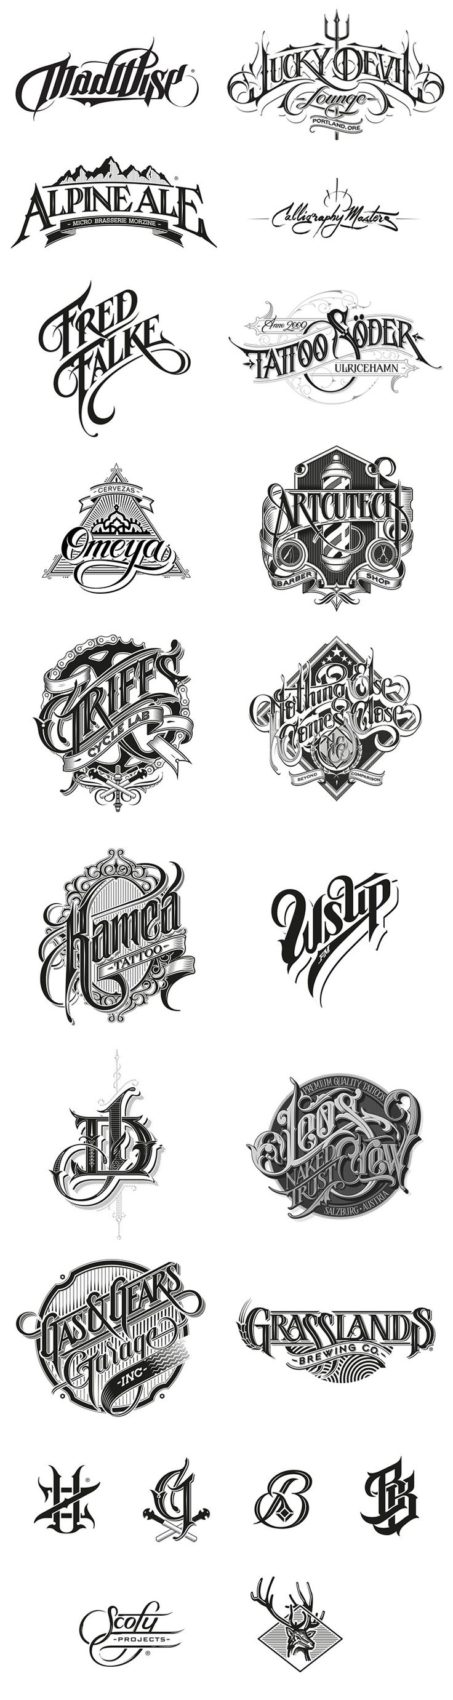 Awesome lettering font design for your own tattoo for Design your own tattoo lettering